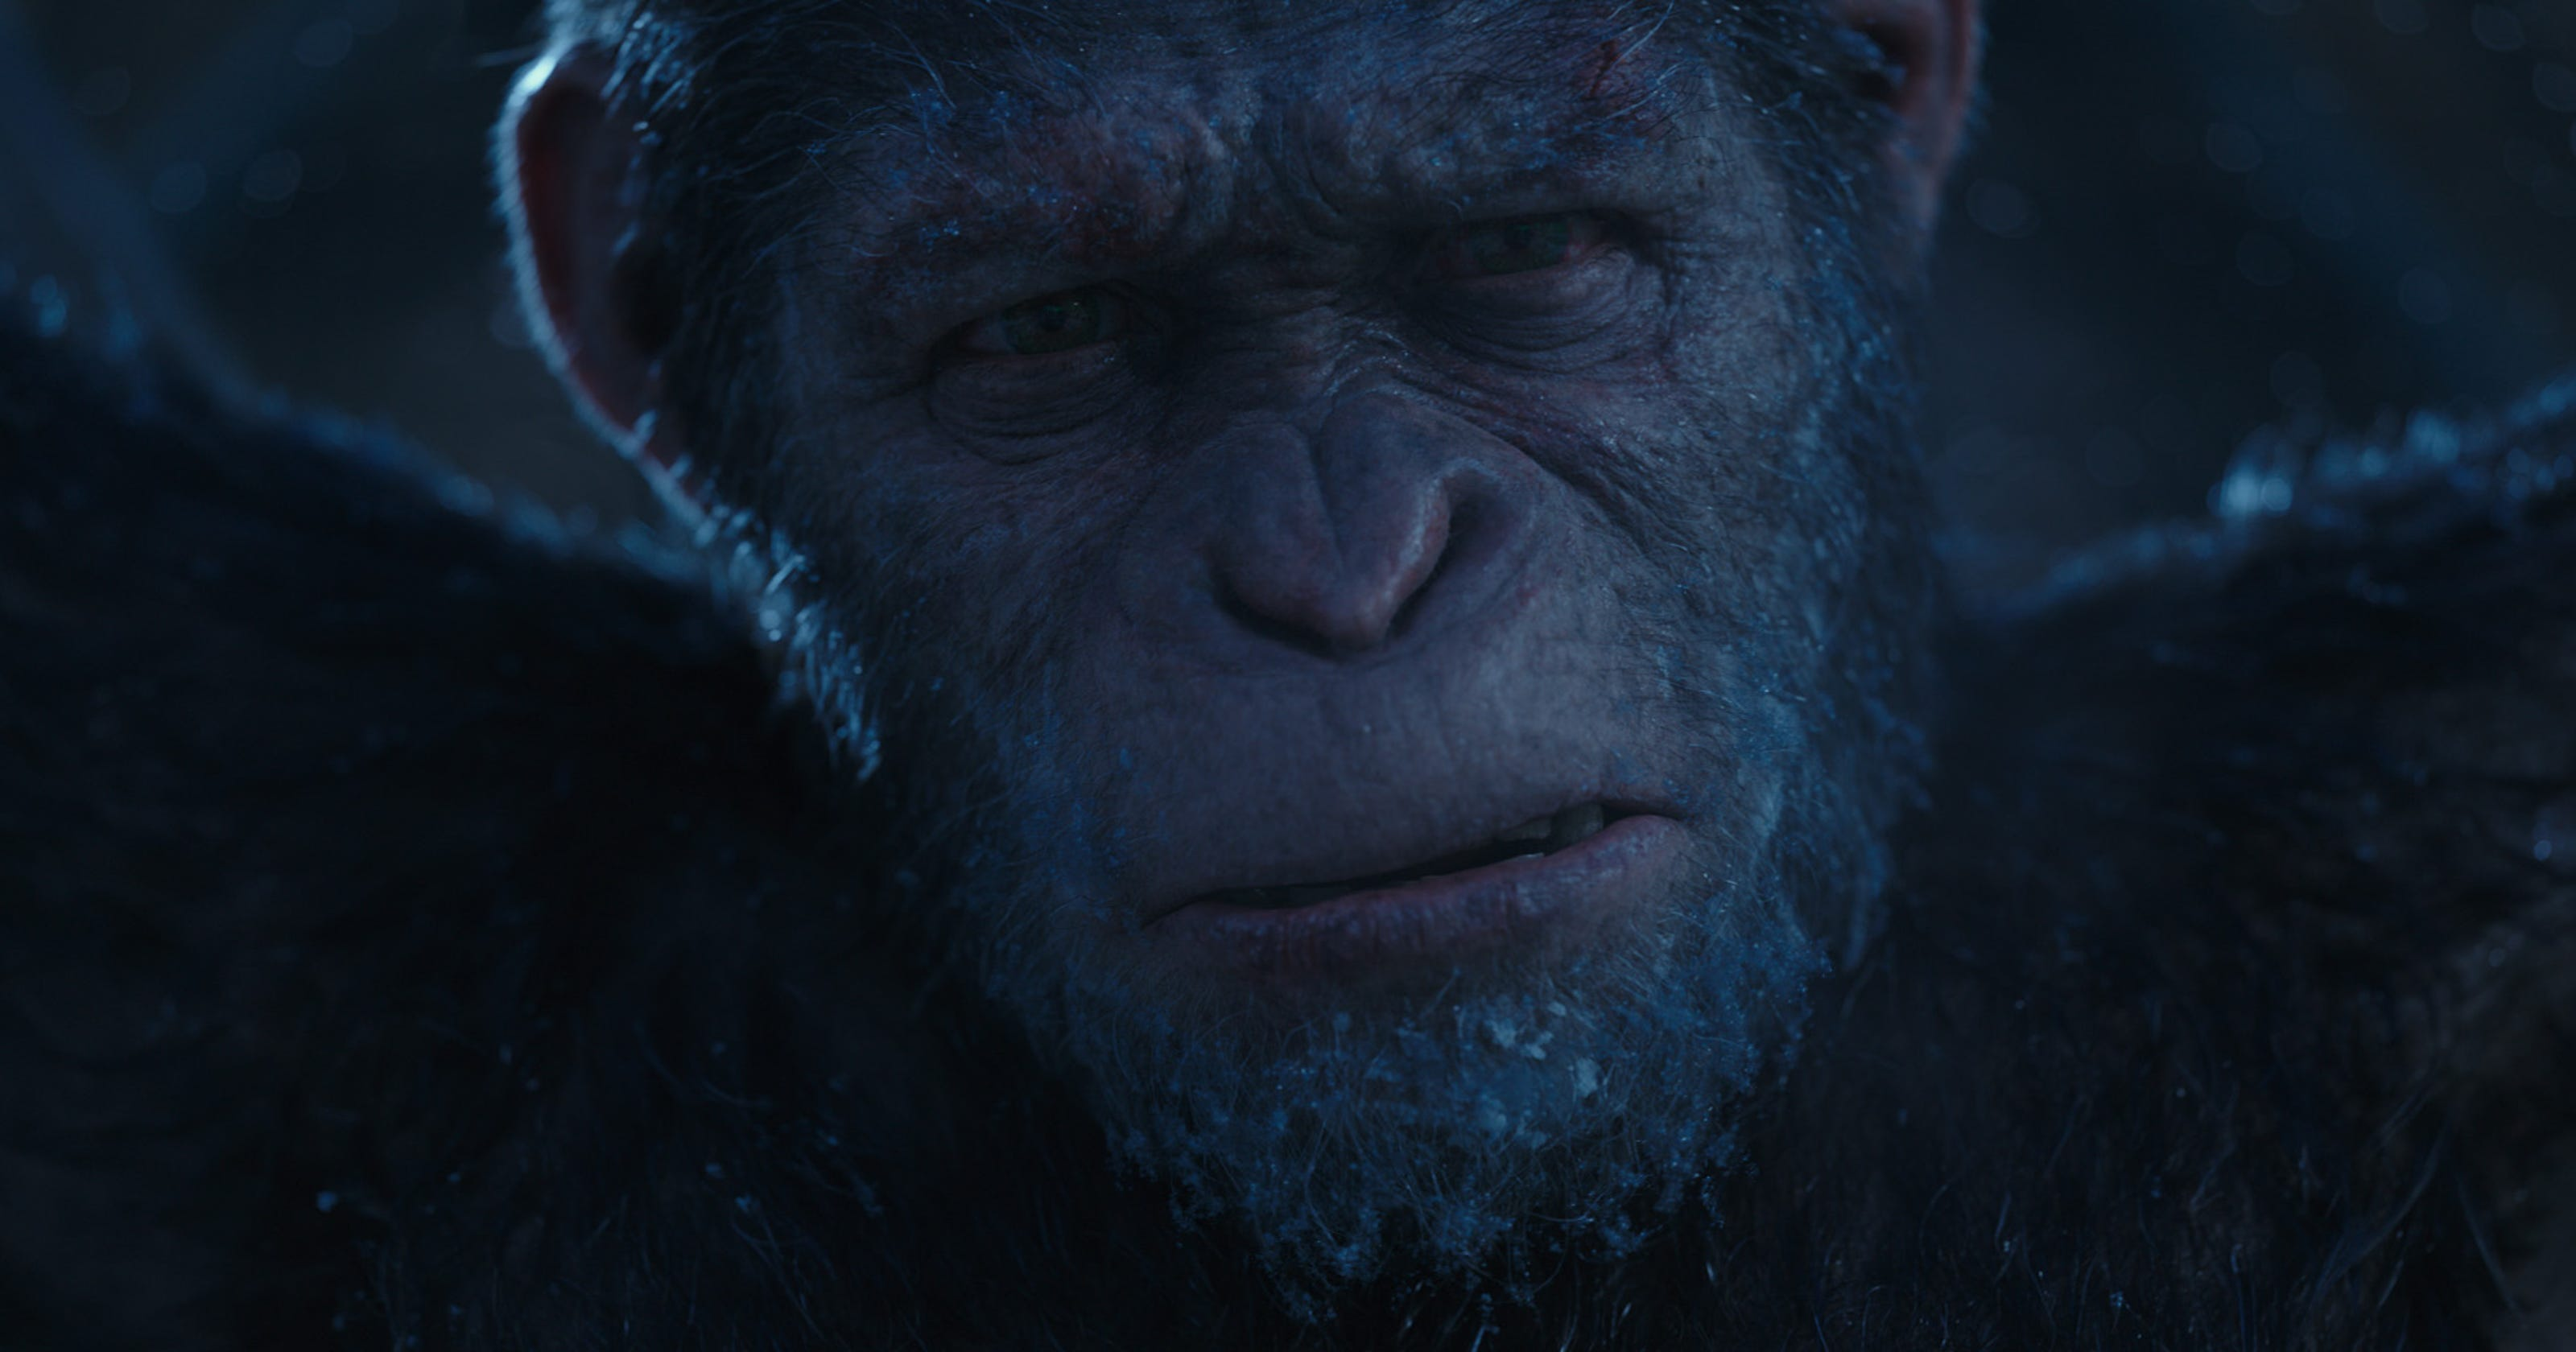 do they have subtitles in dawn of the planet of the apes